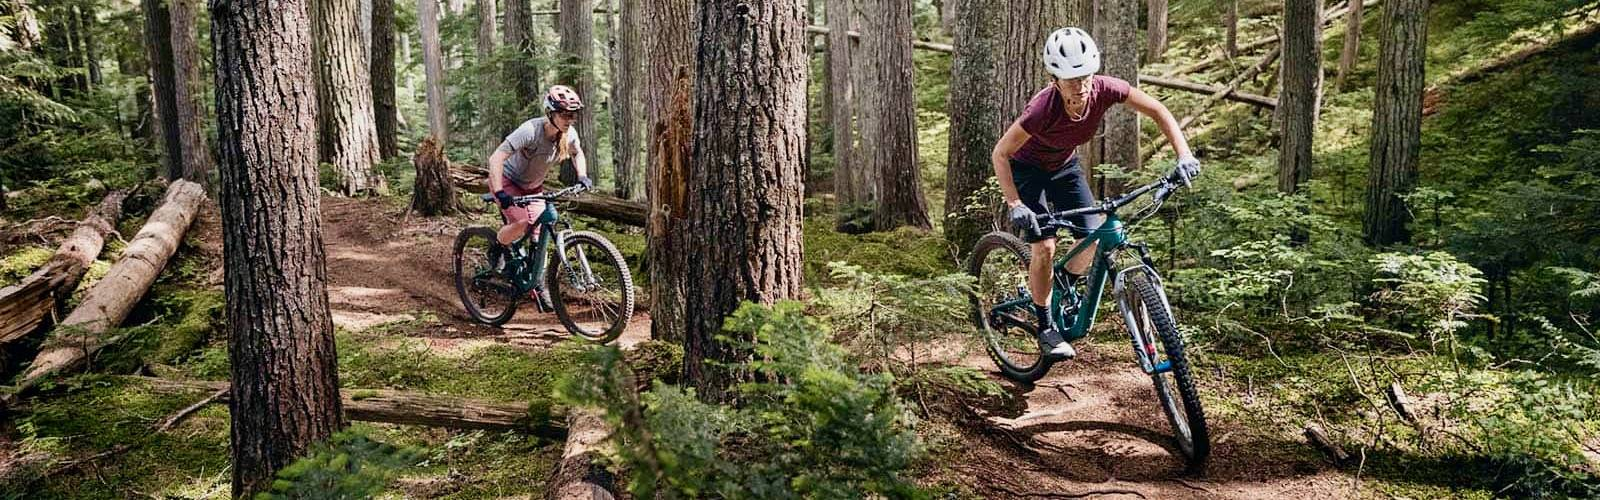 Juliana mountain bikes has the best women's mountain bikes.